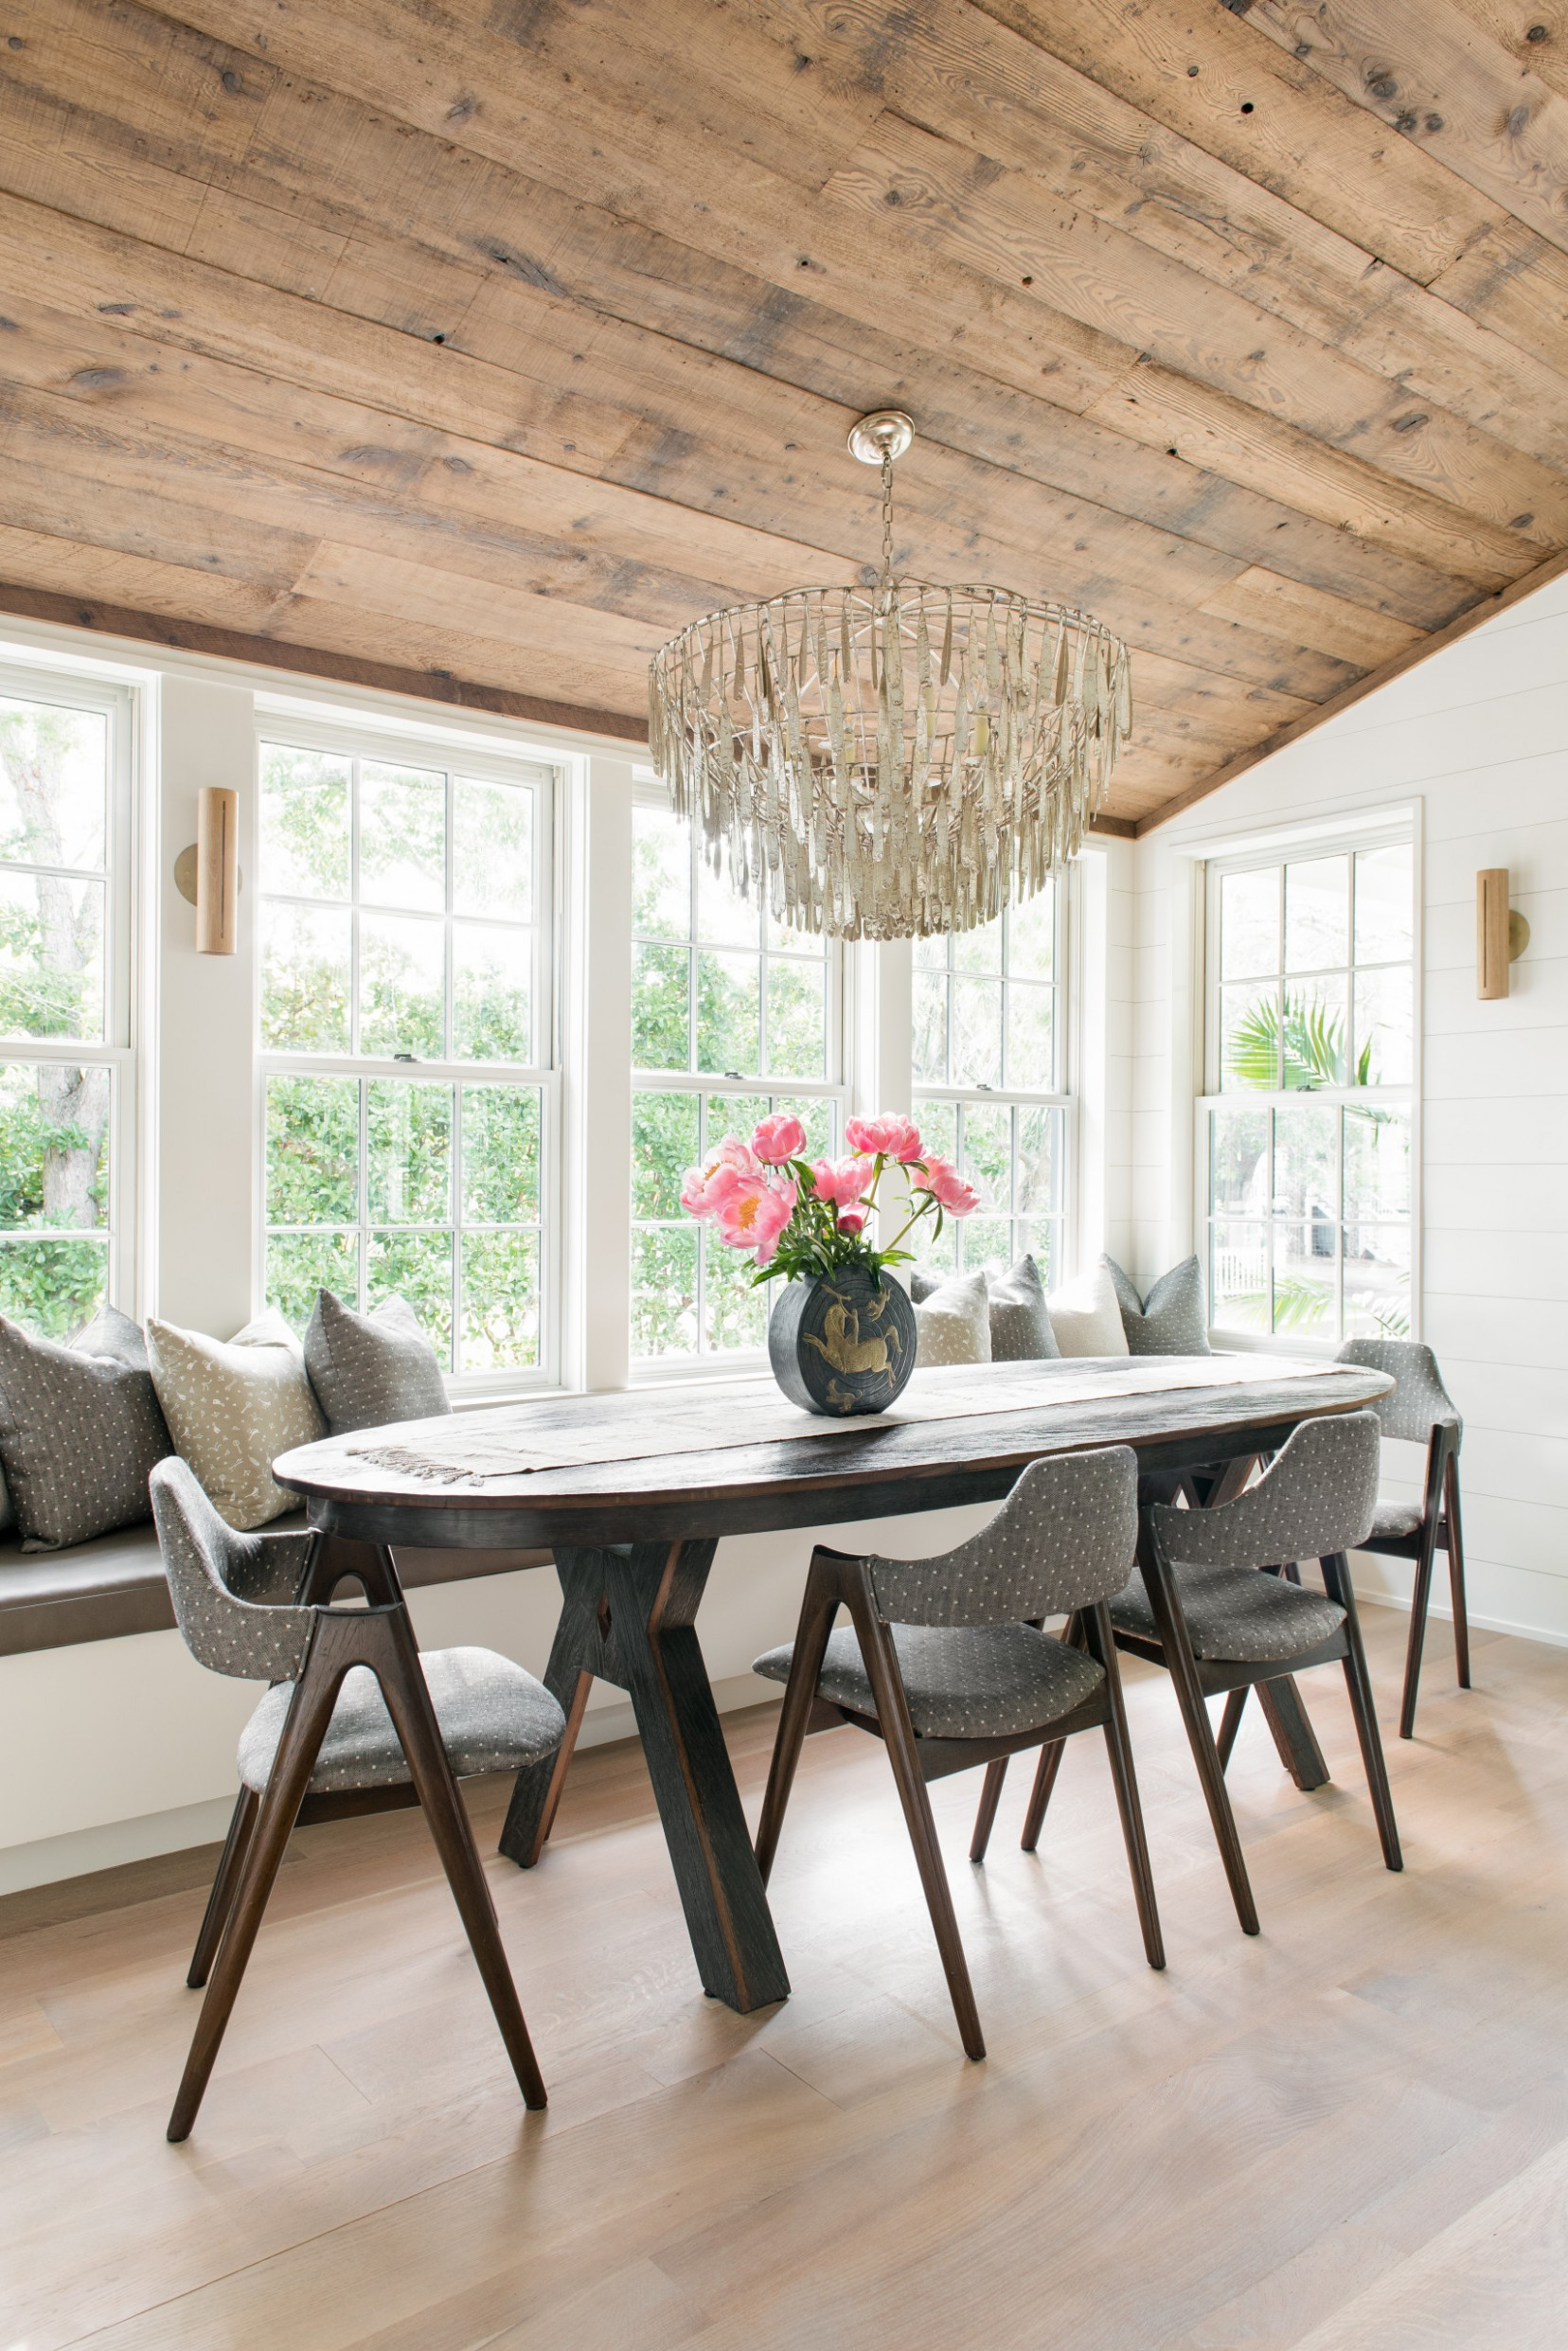 9 Beautiful Small Dining Room Pictures & Ideas  Houzz - Small Dining Room Ideas Houzz